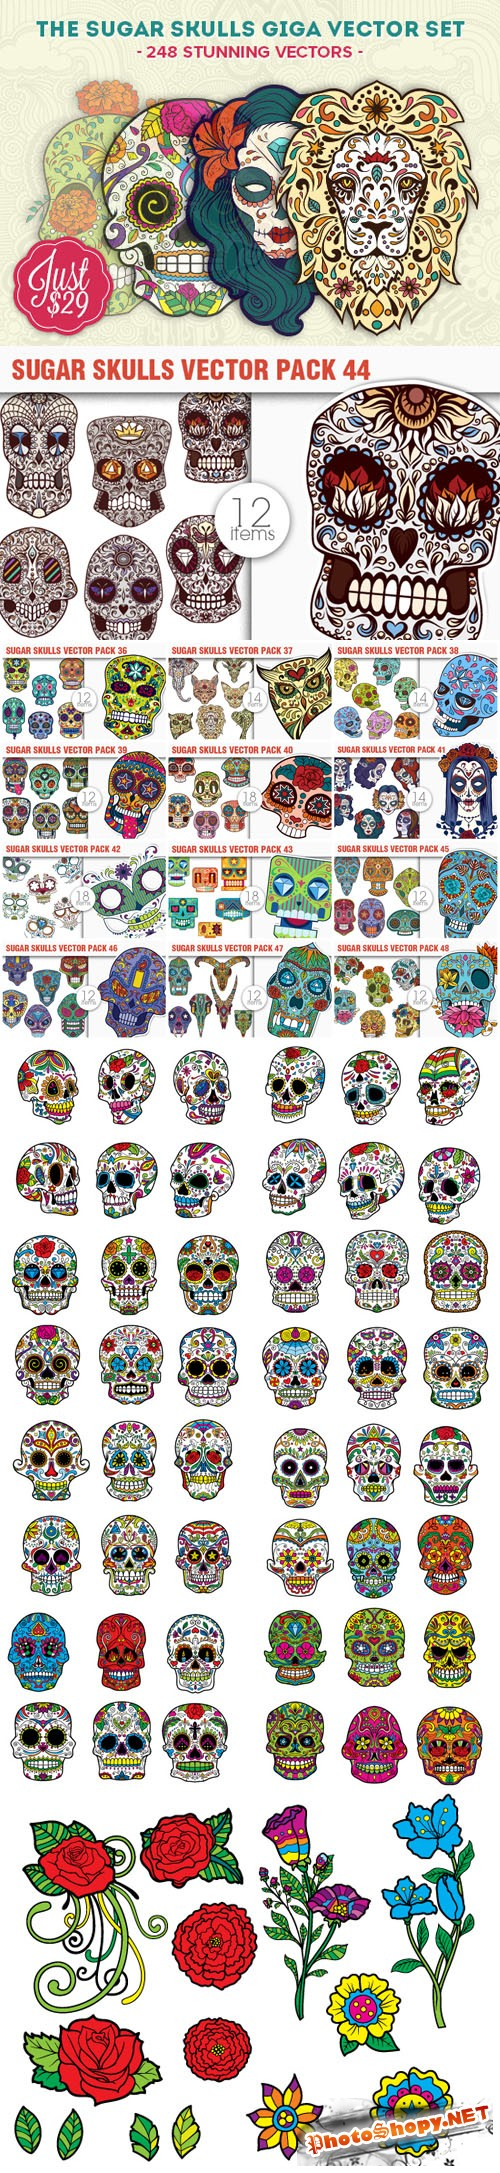 The Sugar Skulls Giga Vector Set - 248 Stunning AI, EPS Vectors